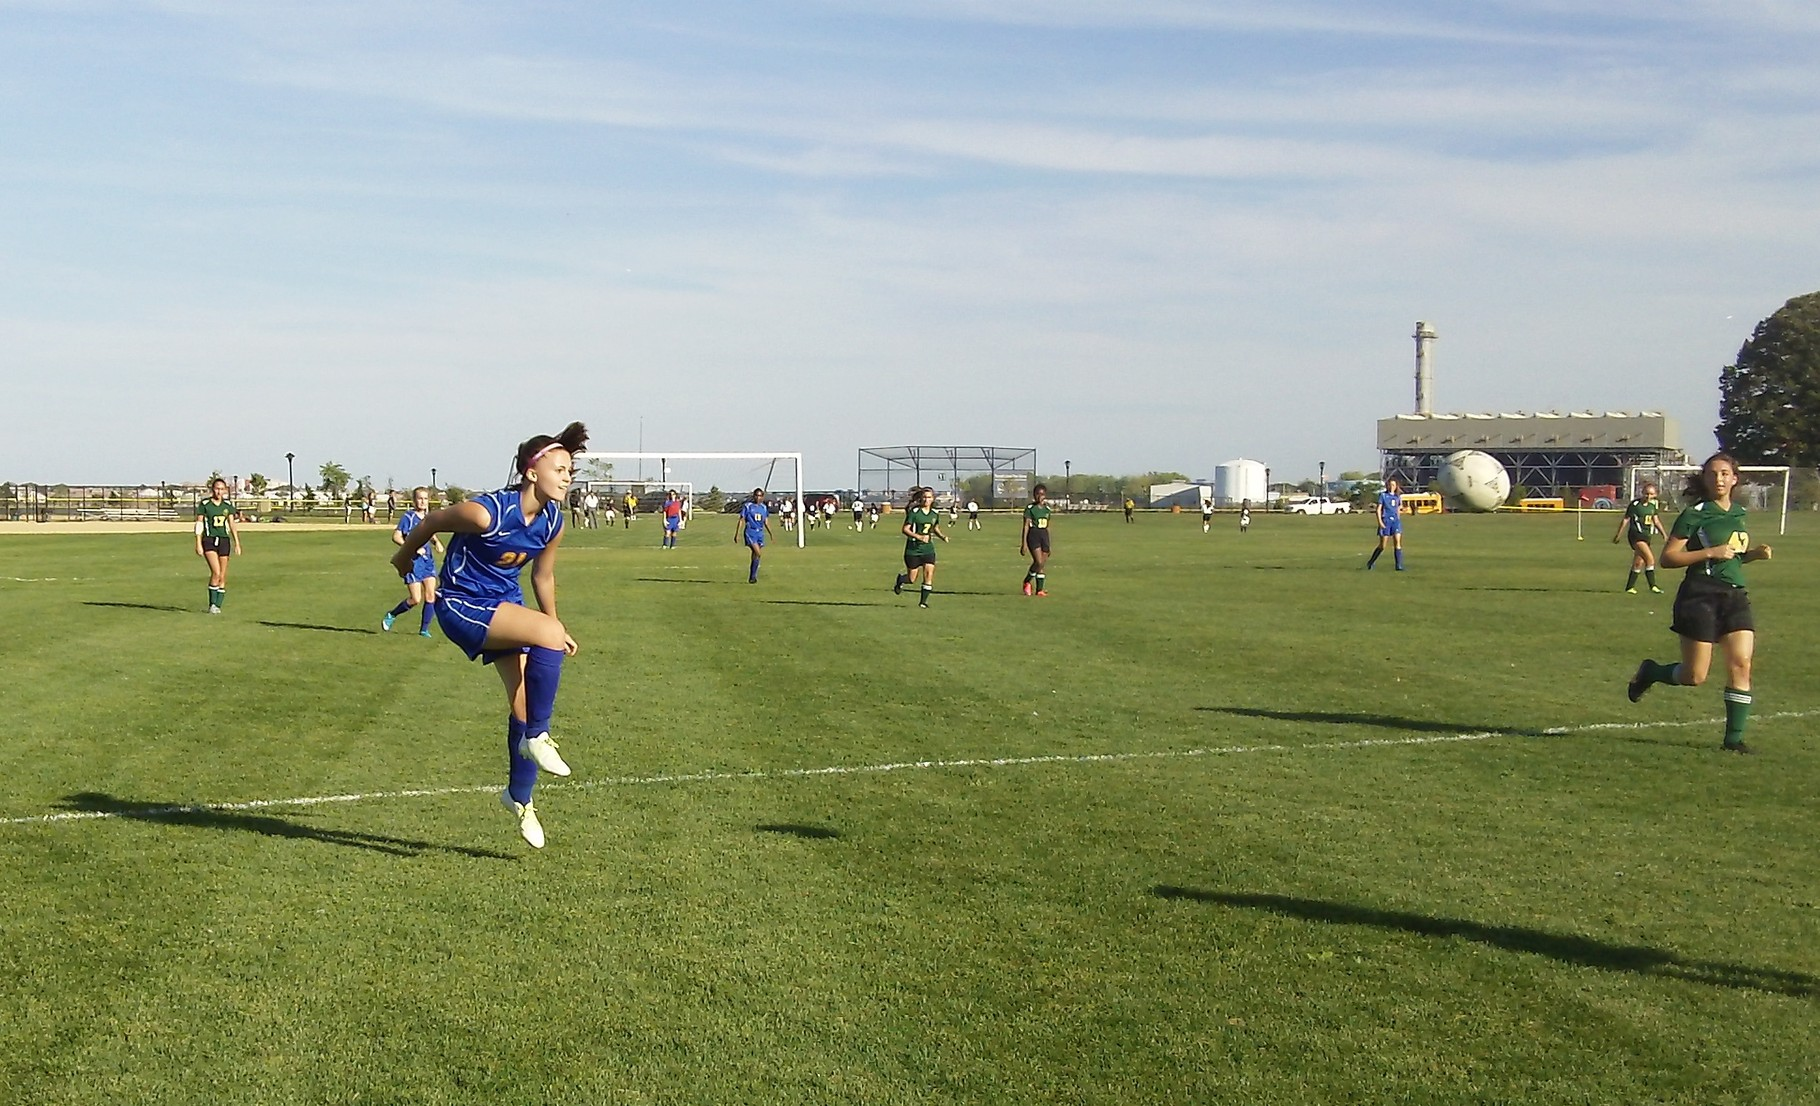 Kate playing soccer on Randall's Island, October, 2015, for York Prep